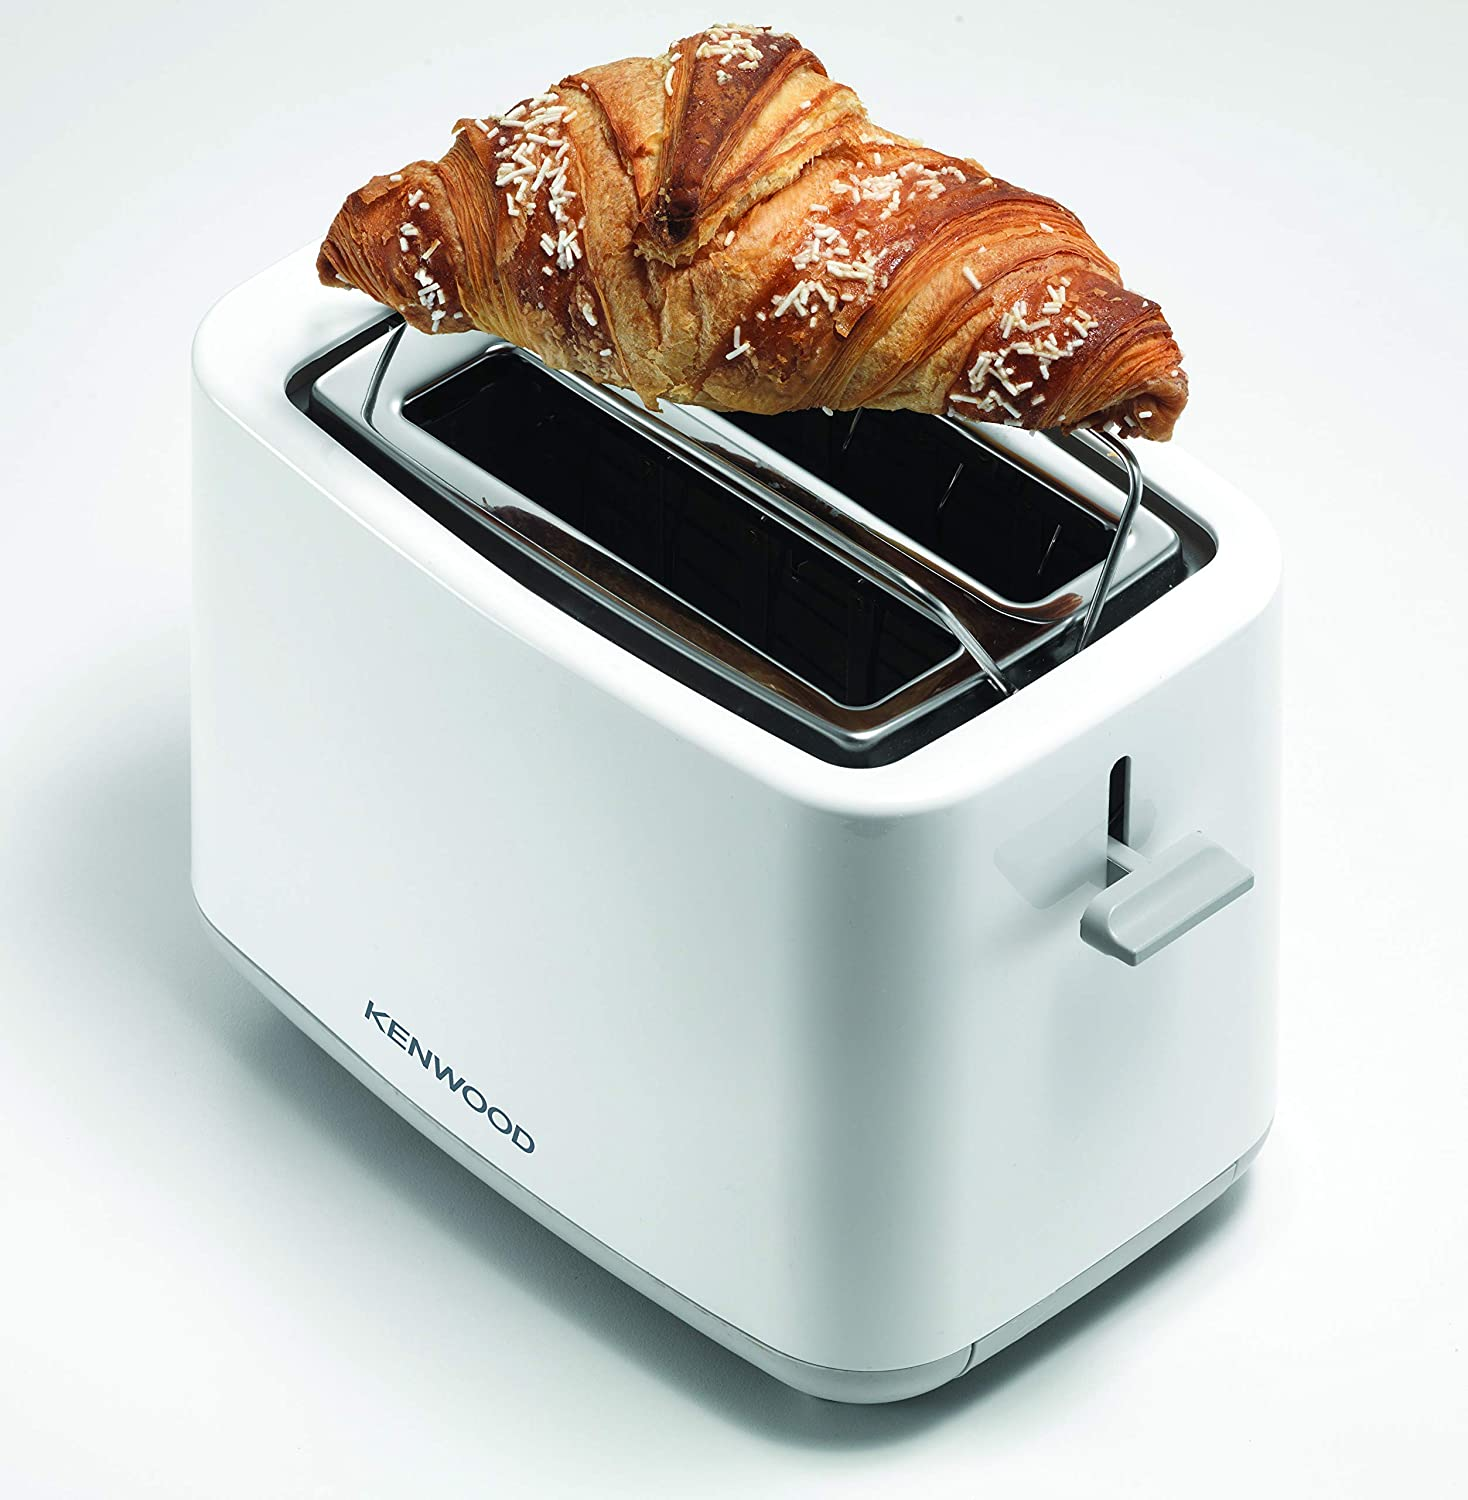 Kenwood 2 Slice Toaster White TCP01.A0WH